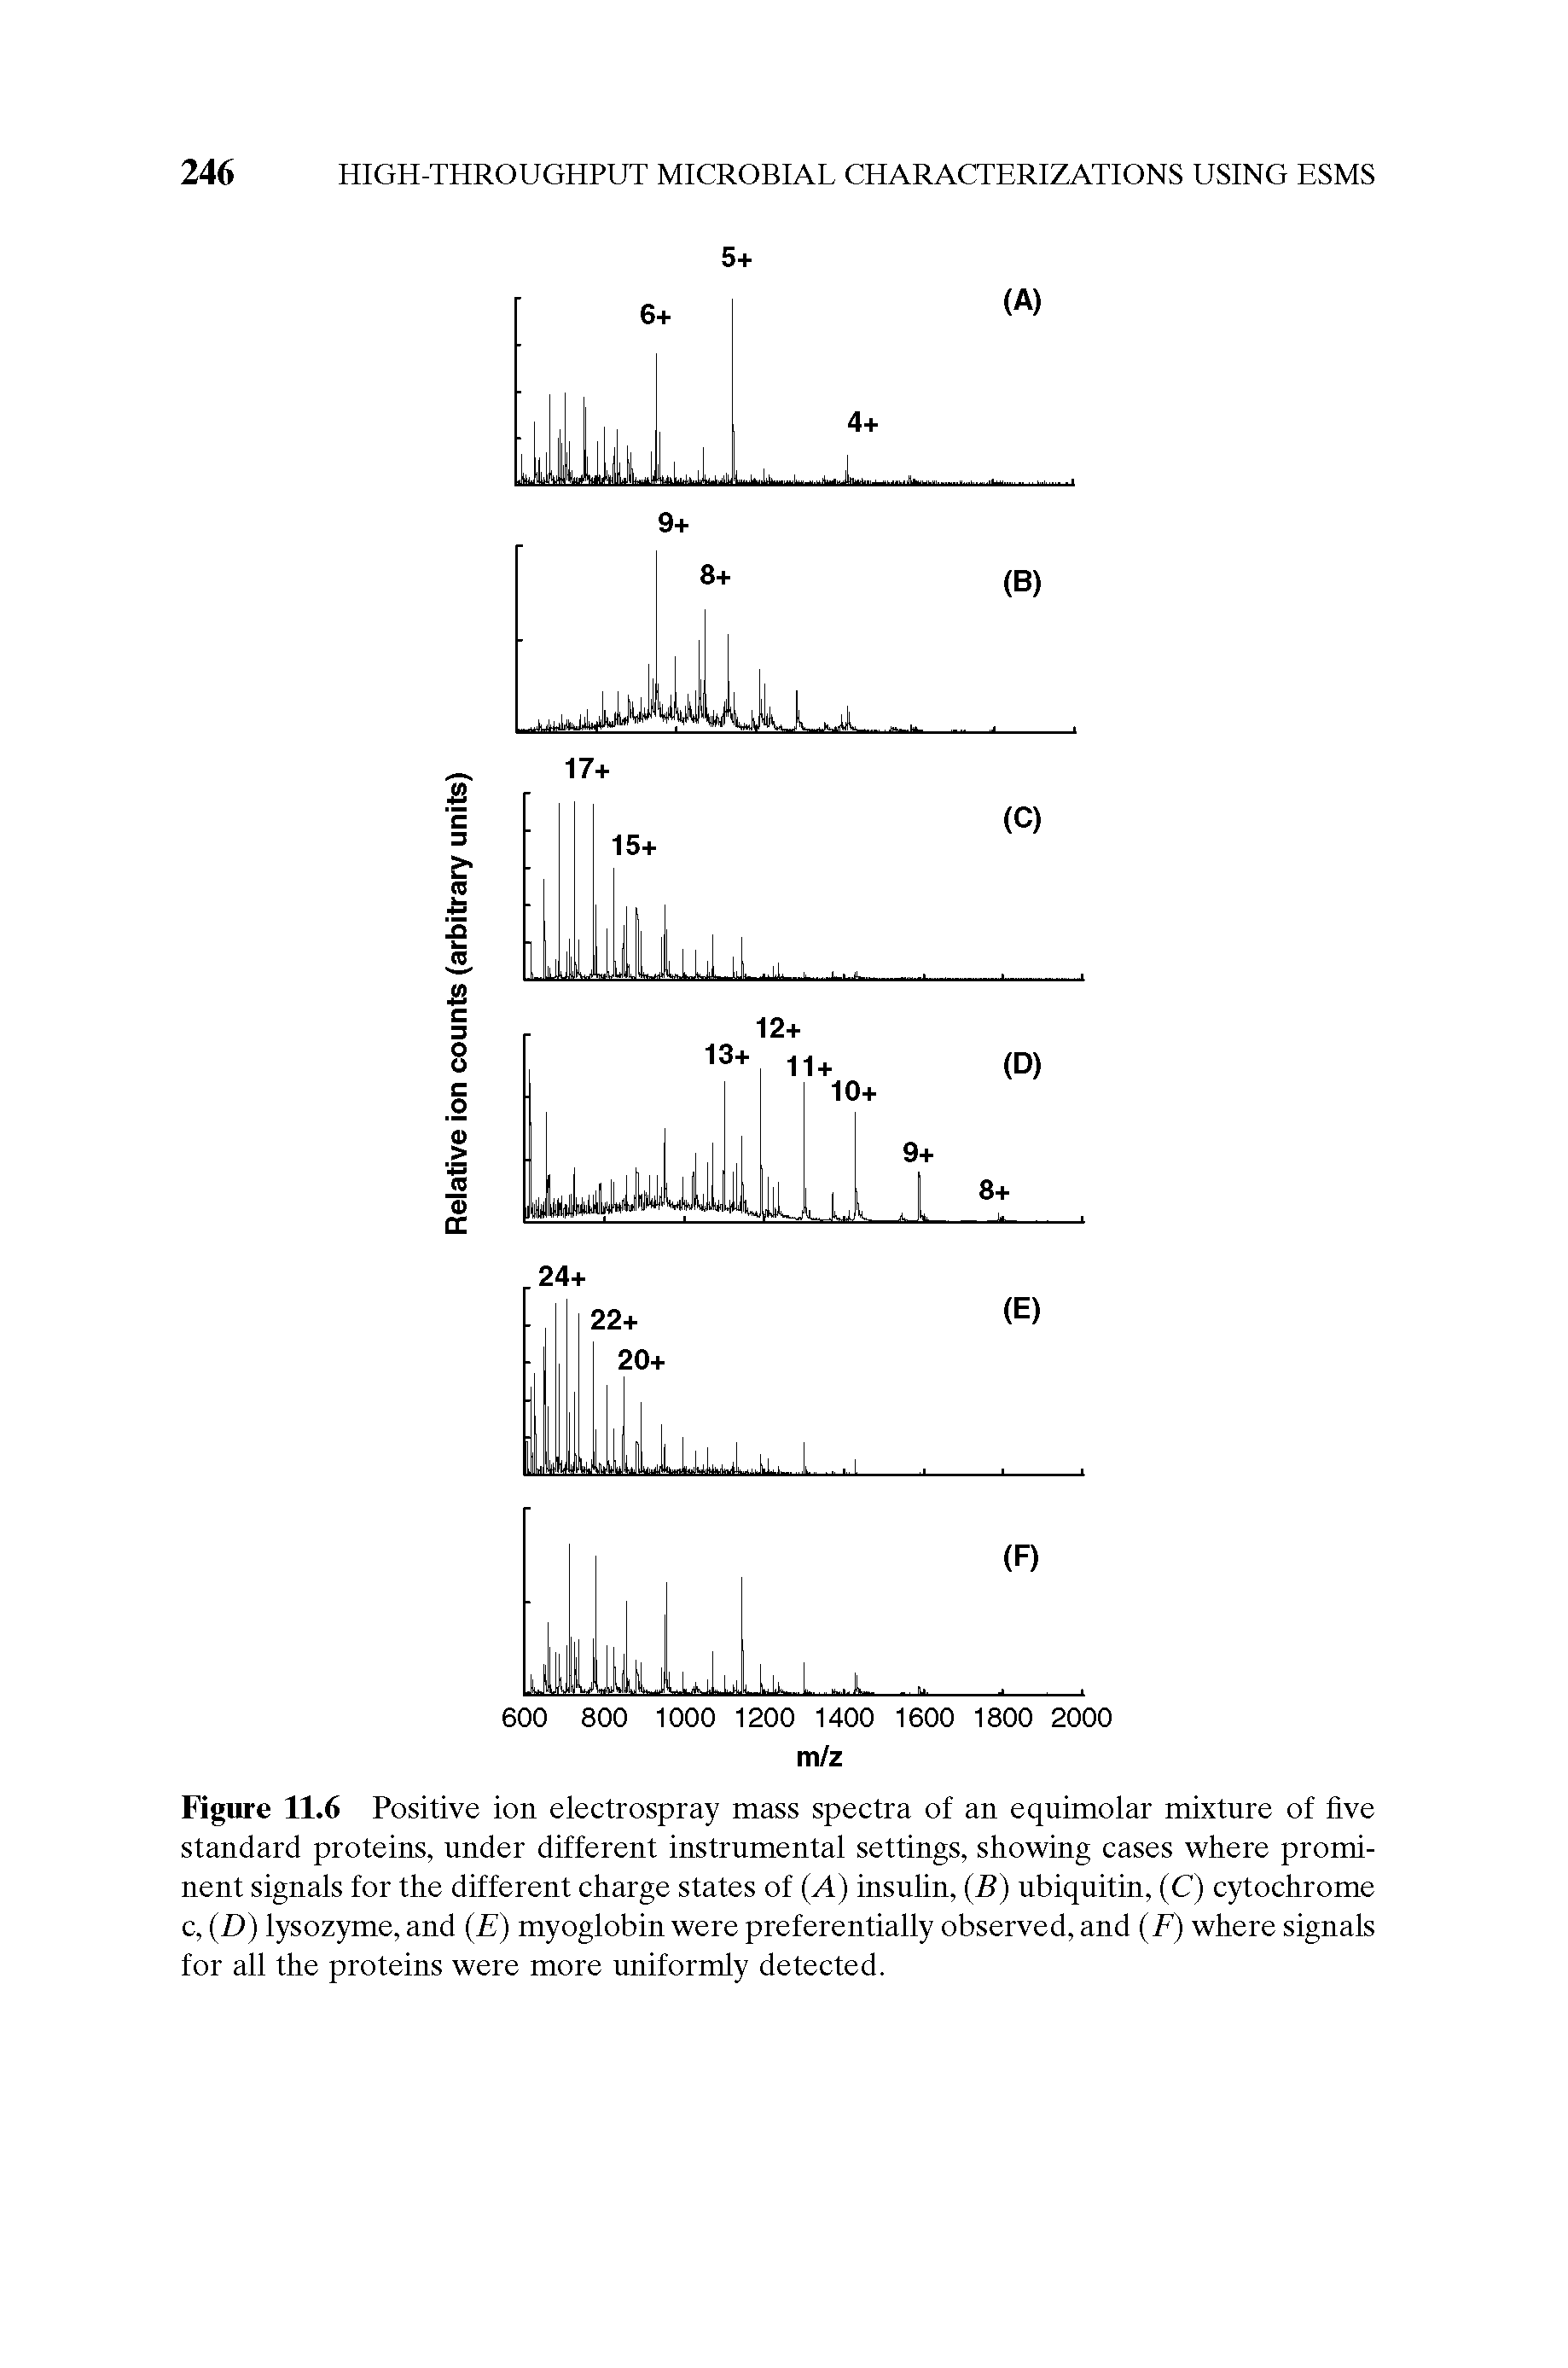 Figure 11.6 Positive ion electrospray mass spectra of an equimolar mixture of five standard proteins, under different instrumental settings, showing cases where prominent signals for the different charge states of (A) insulin, (B) ubiquitin, (C) cytochrome c, (D) lysozyme, and (E) myoglobin were preferentially observed, and (F) where signals for all the proteins were more uniformly detected.